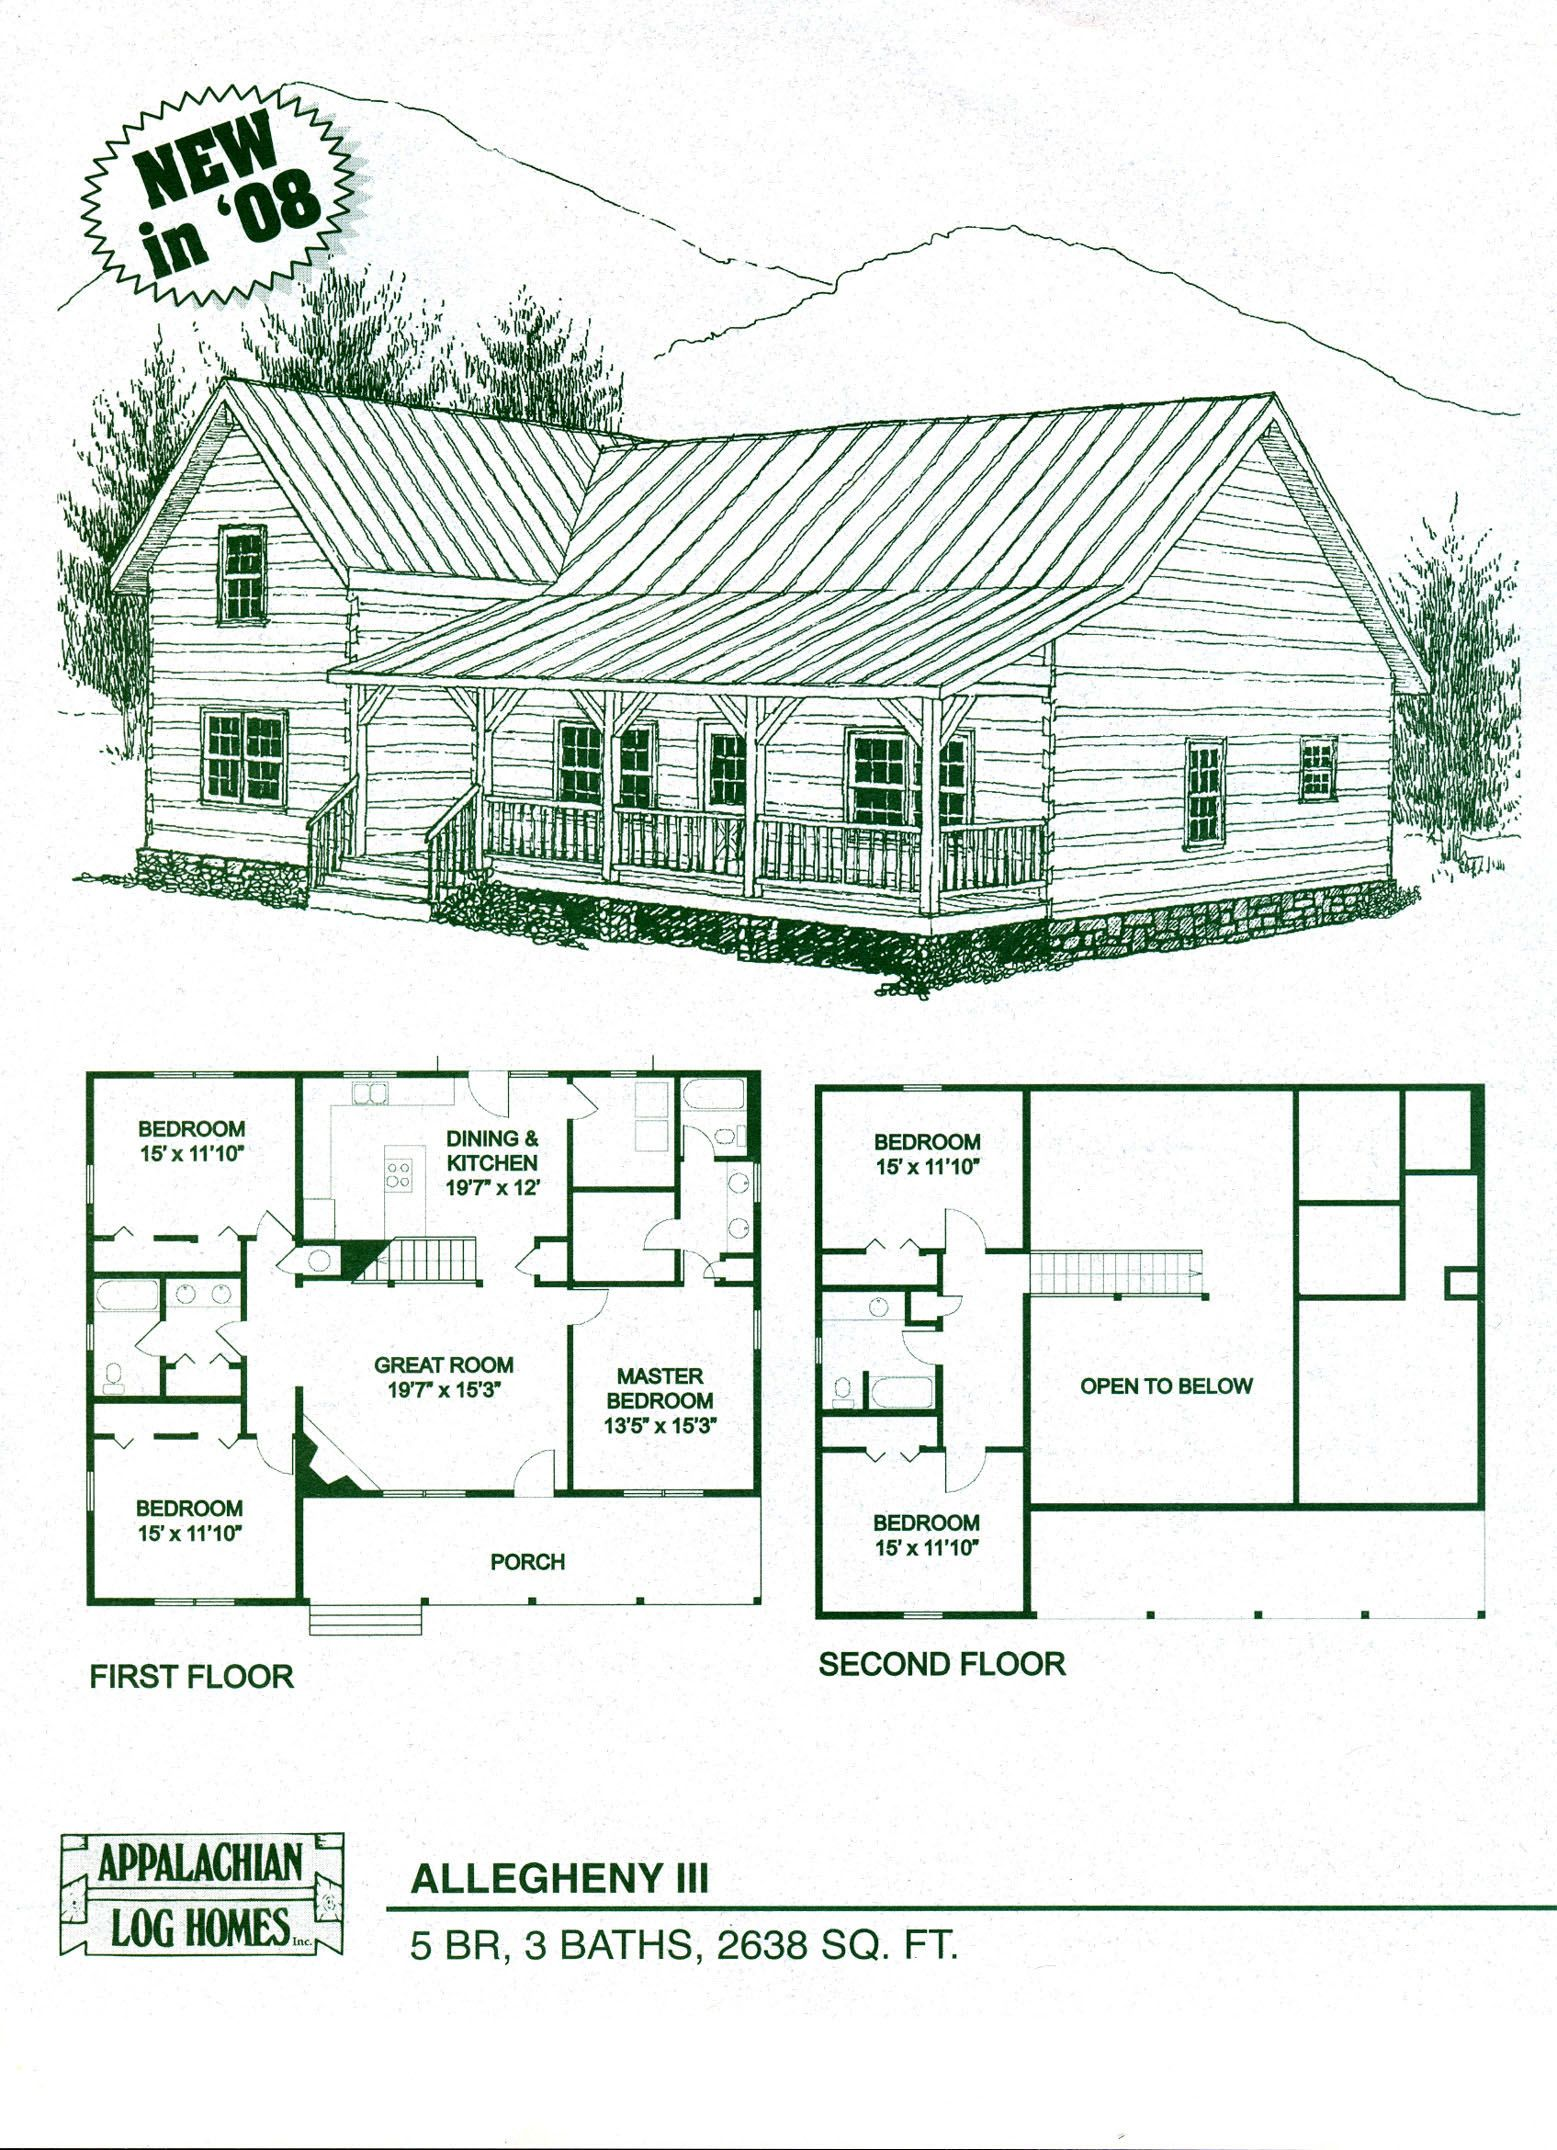 Log home floor plans log cabin kits appalachian log for Log home plans and designs